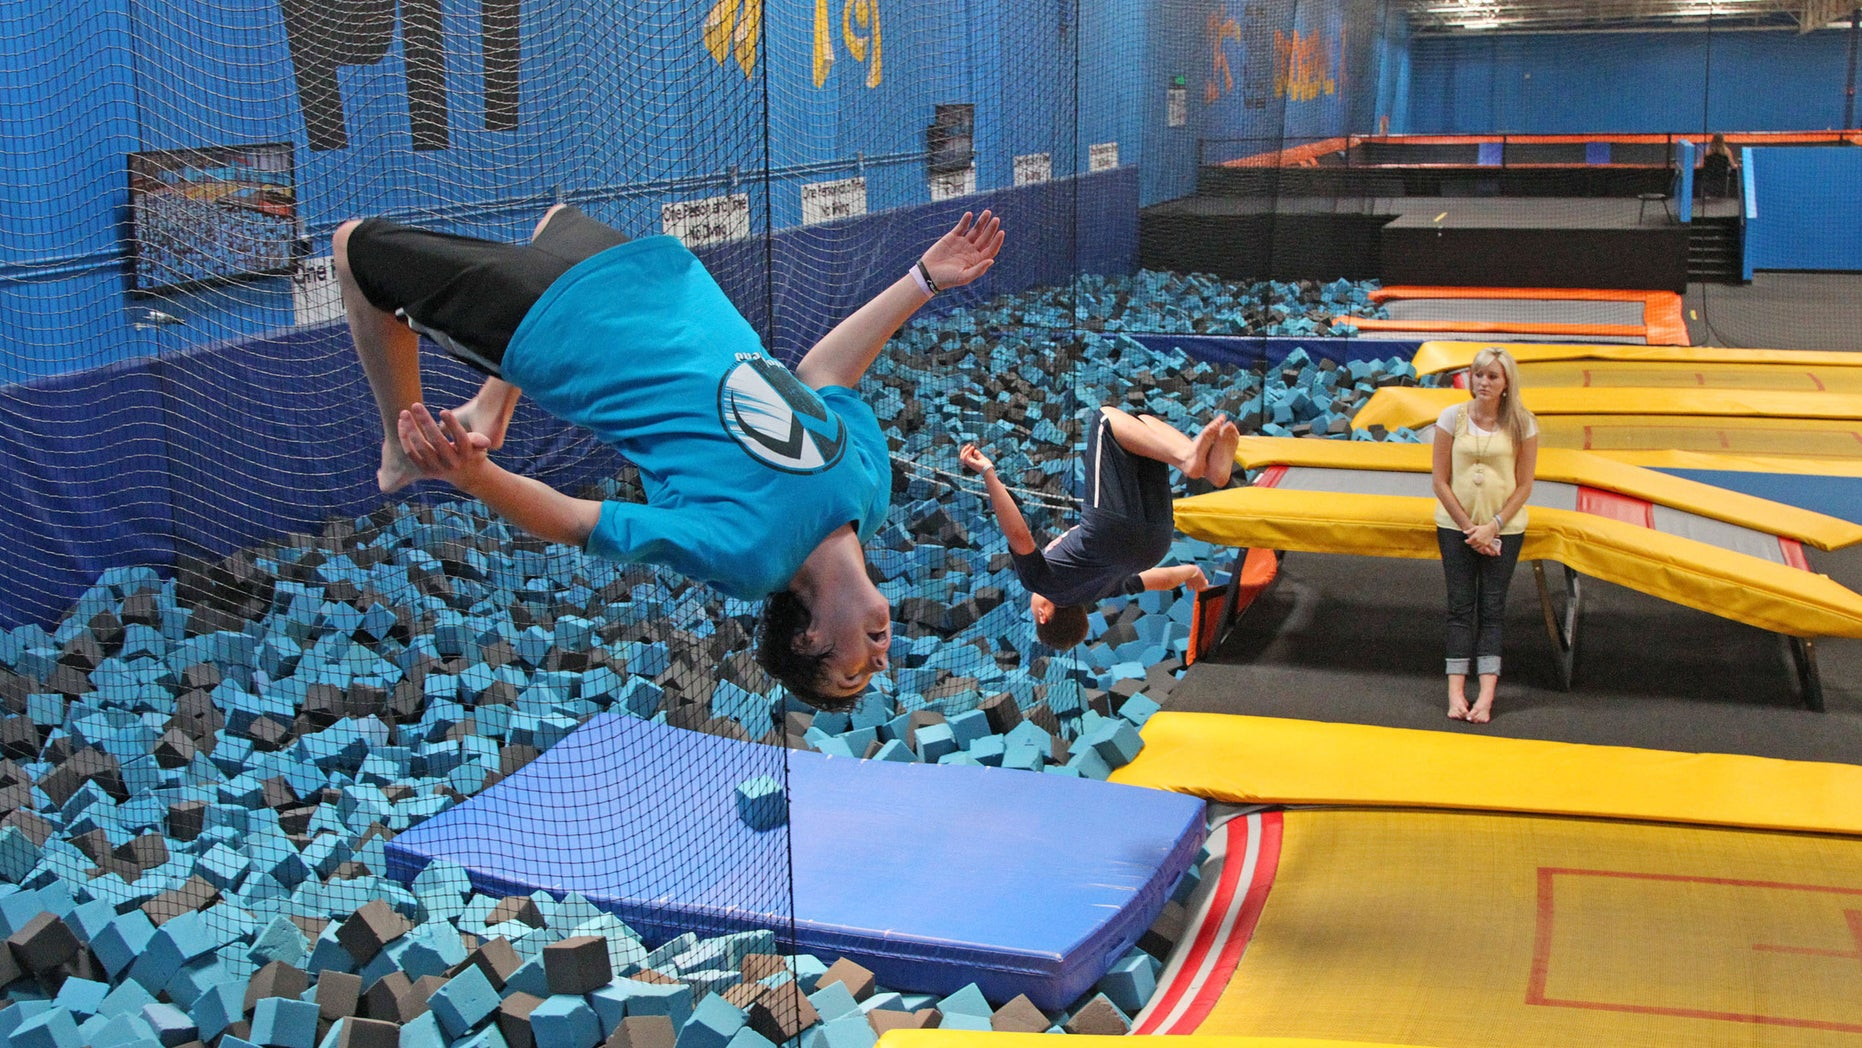 In this July 31, 2013, file photo, a patron flips at a trampoline park in Orem, Utah. Trampoline park injuries have soared as the indoor jumping trend has spread. That's according to a study published Monday, Aug. 1, 2016, that shows annual U.S. emergency room visits jumped 12-fold for park-related injuries from 2010 through 2014. (AP Photo/Rick Bowmer, File)